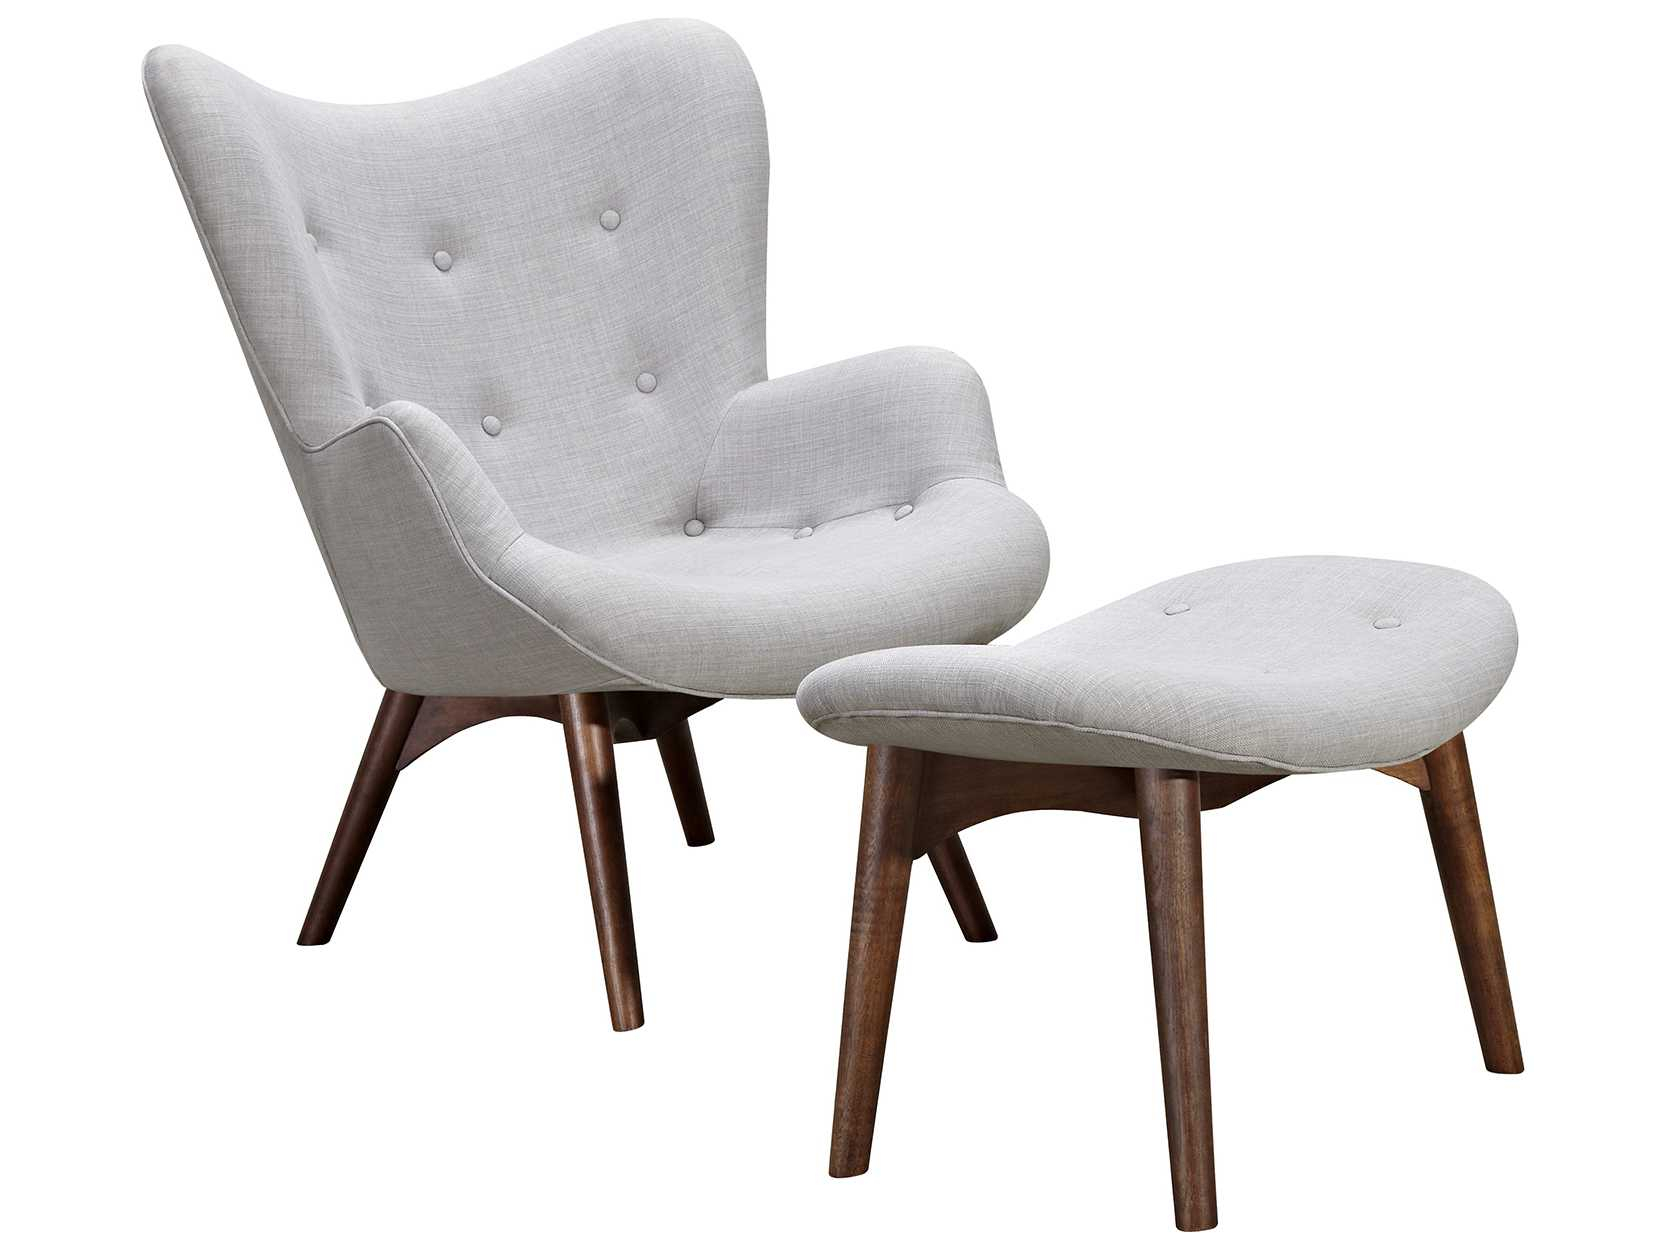 Nyekoncept Aiden Glacier White Accent Chair & Ottoman With Walnut throughout Aidan Ii Swivel Accent Chairs